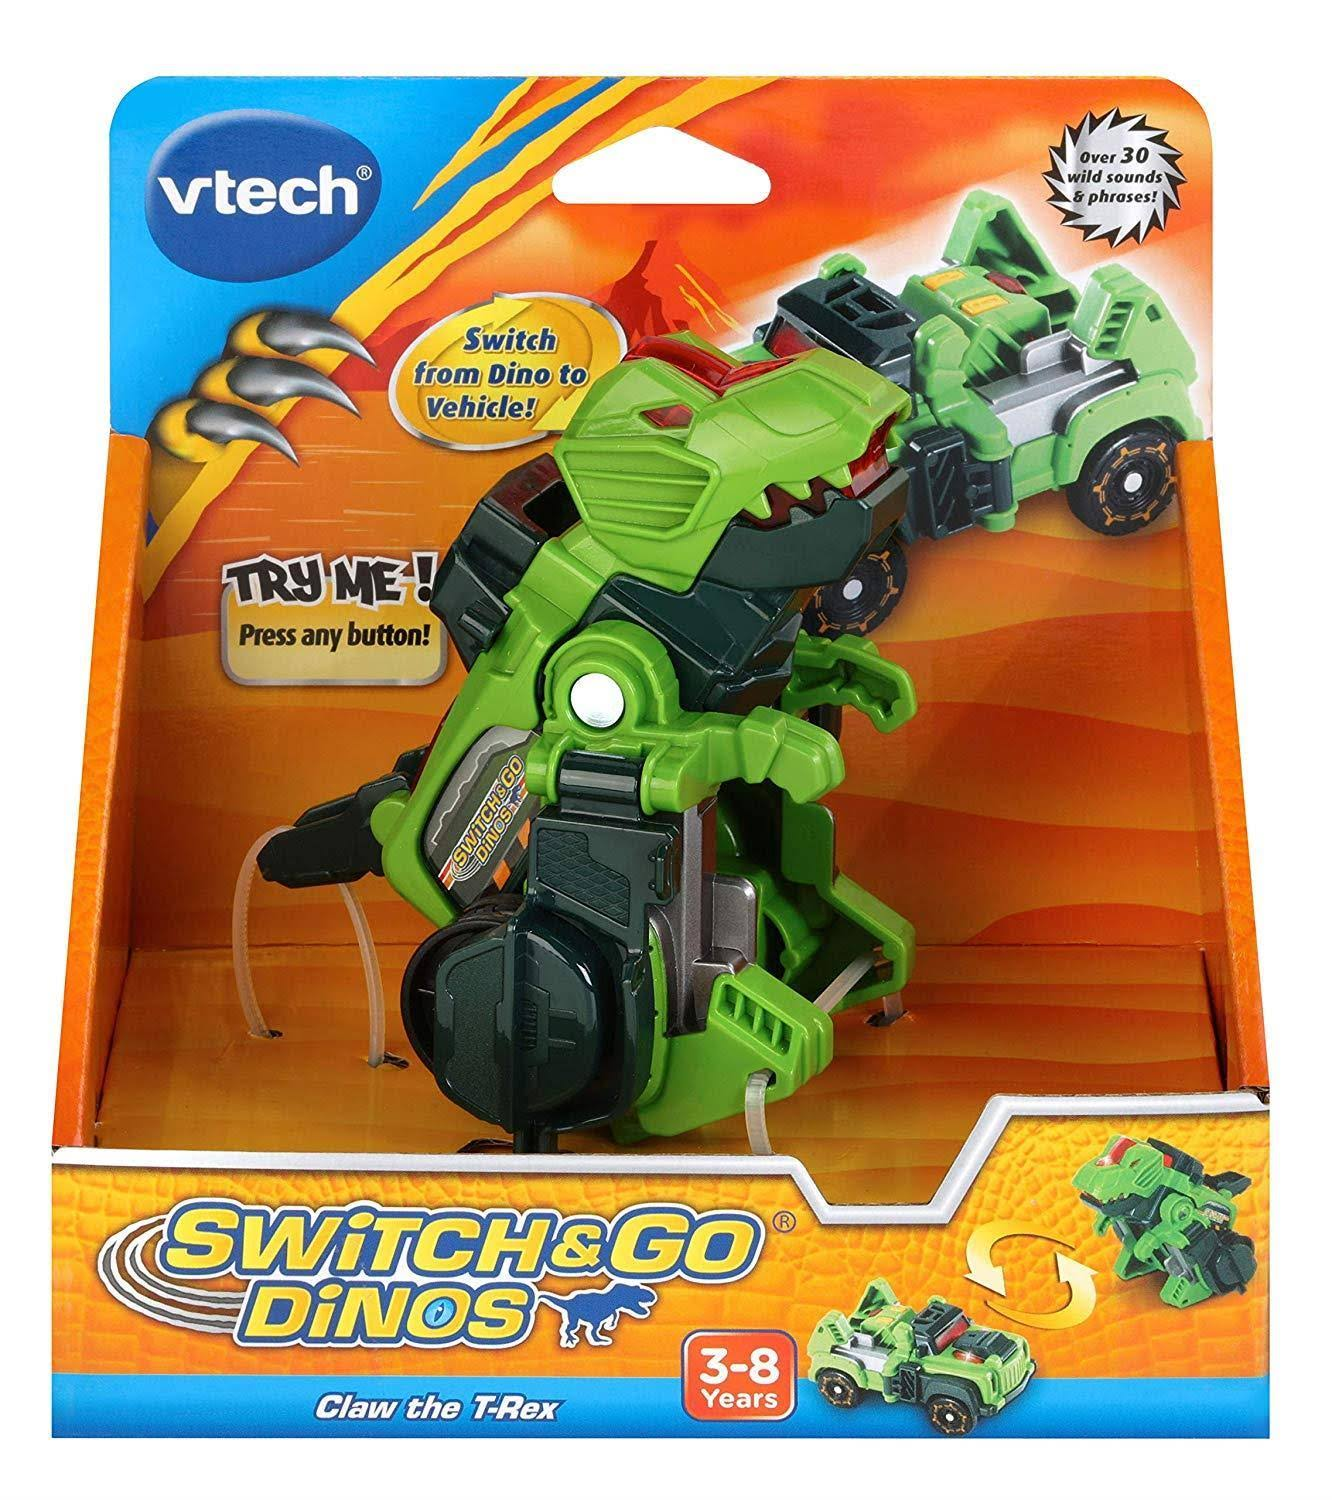 Vtech Switch and Go Dinos Claw the T-Rex Toy